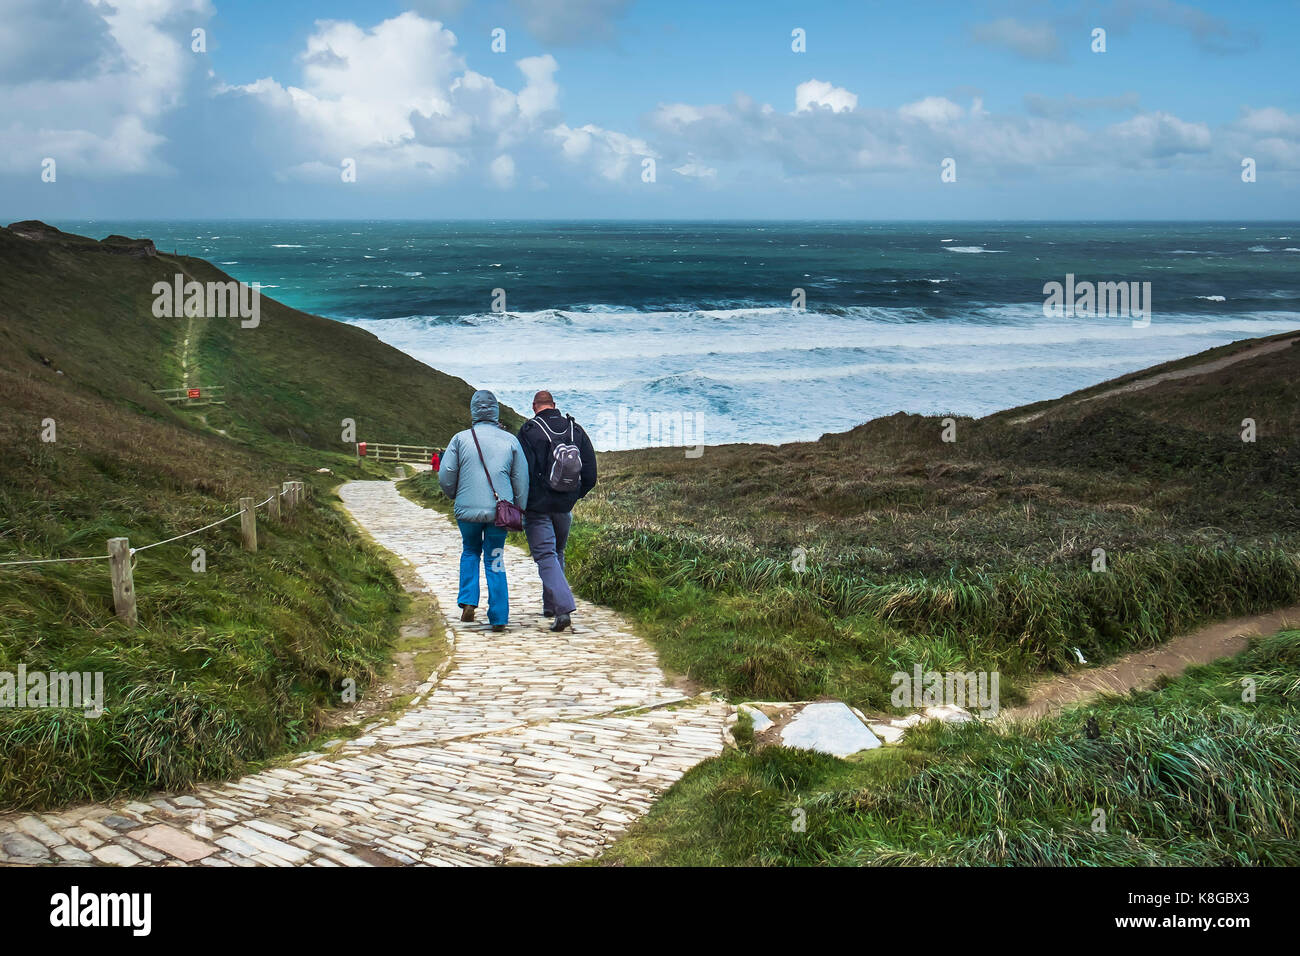 People walking down the coastal footpath at Bedruthan Steps on the North Cornwall coast. - Stock Image